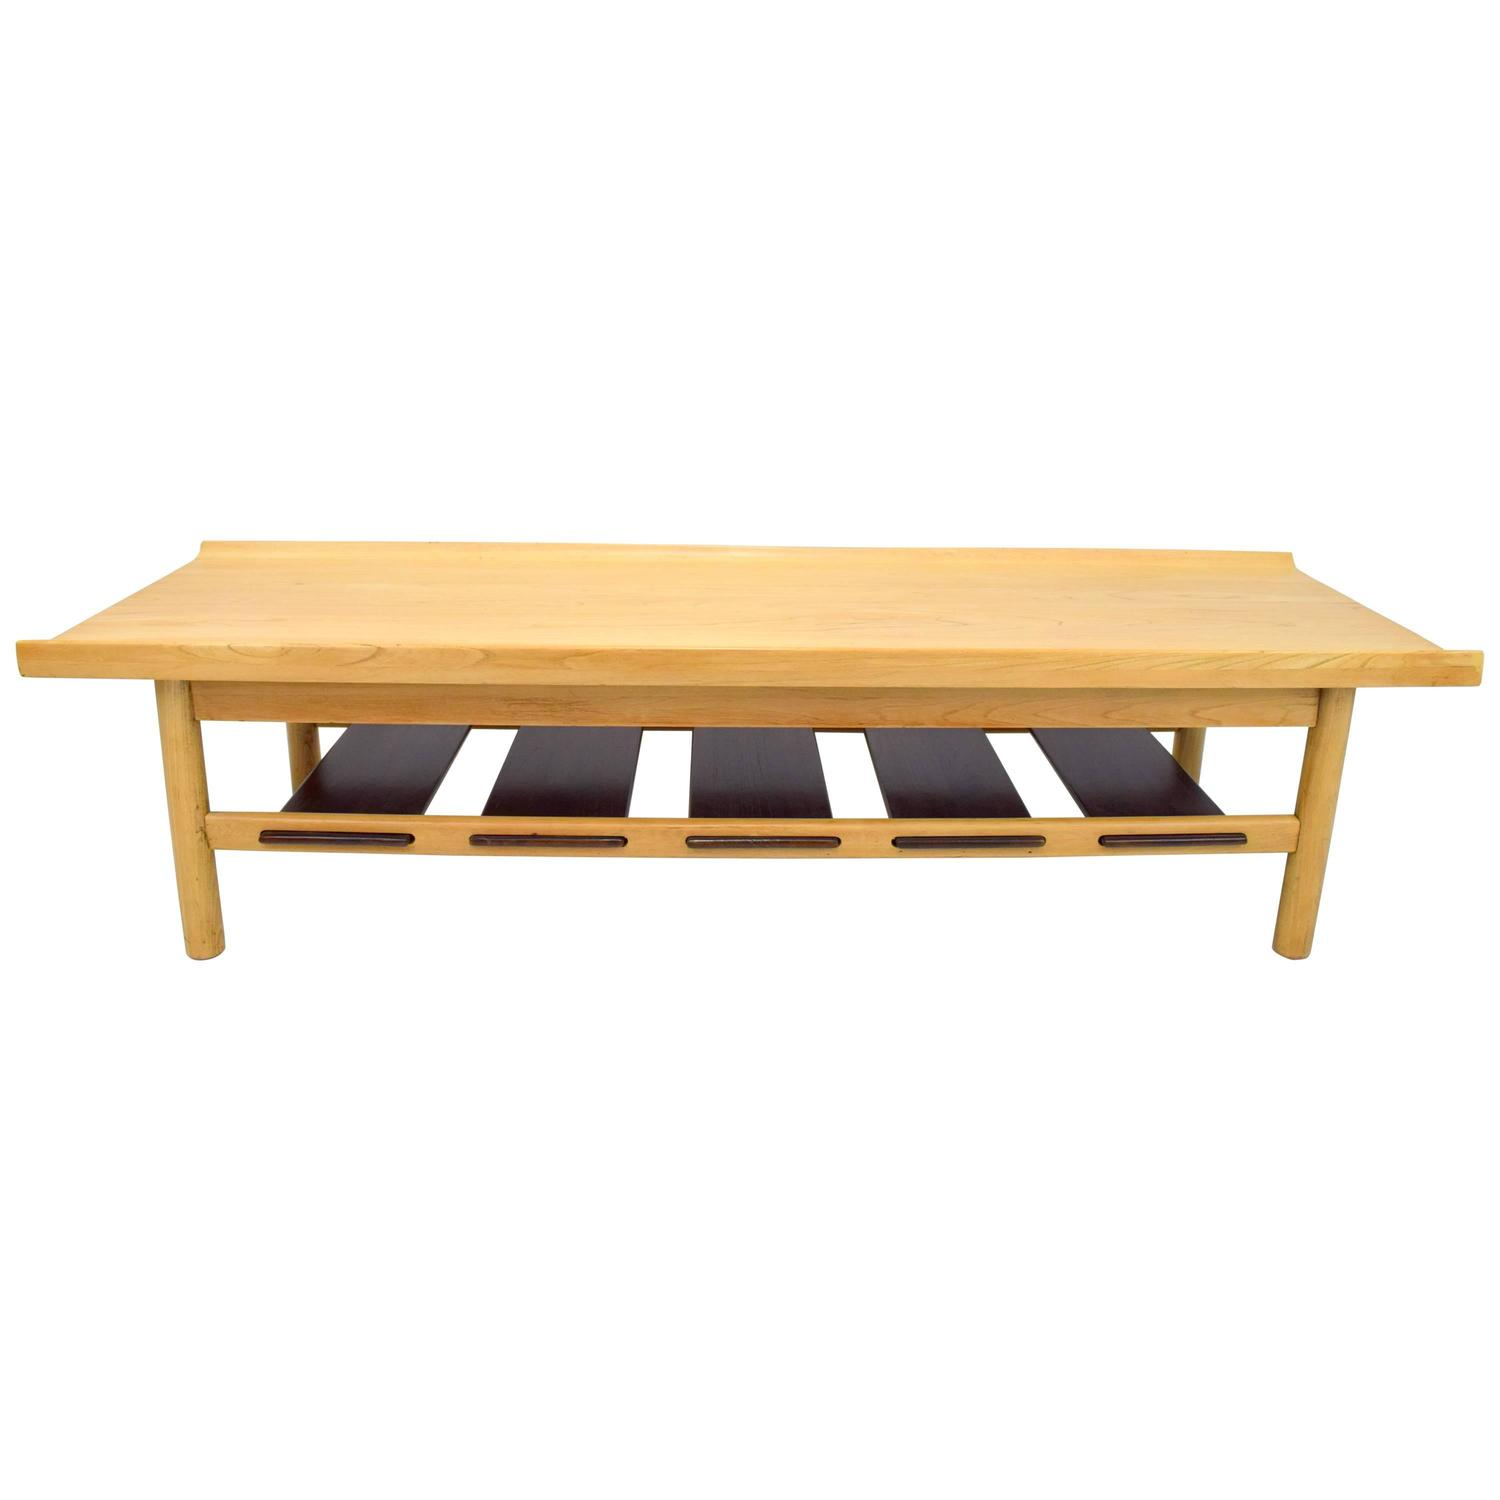 lawrence peabody bleached walnut coffee table bench for richardson